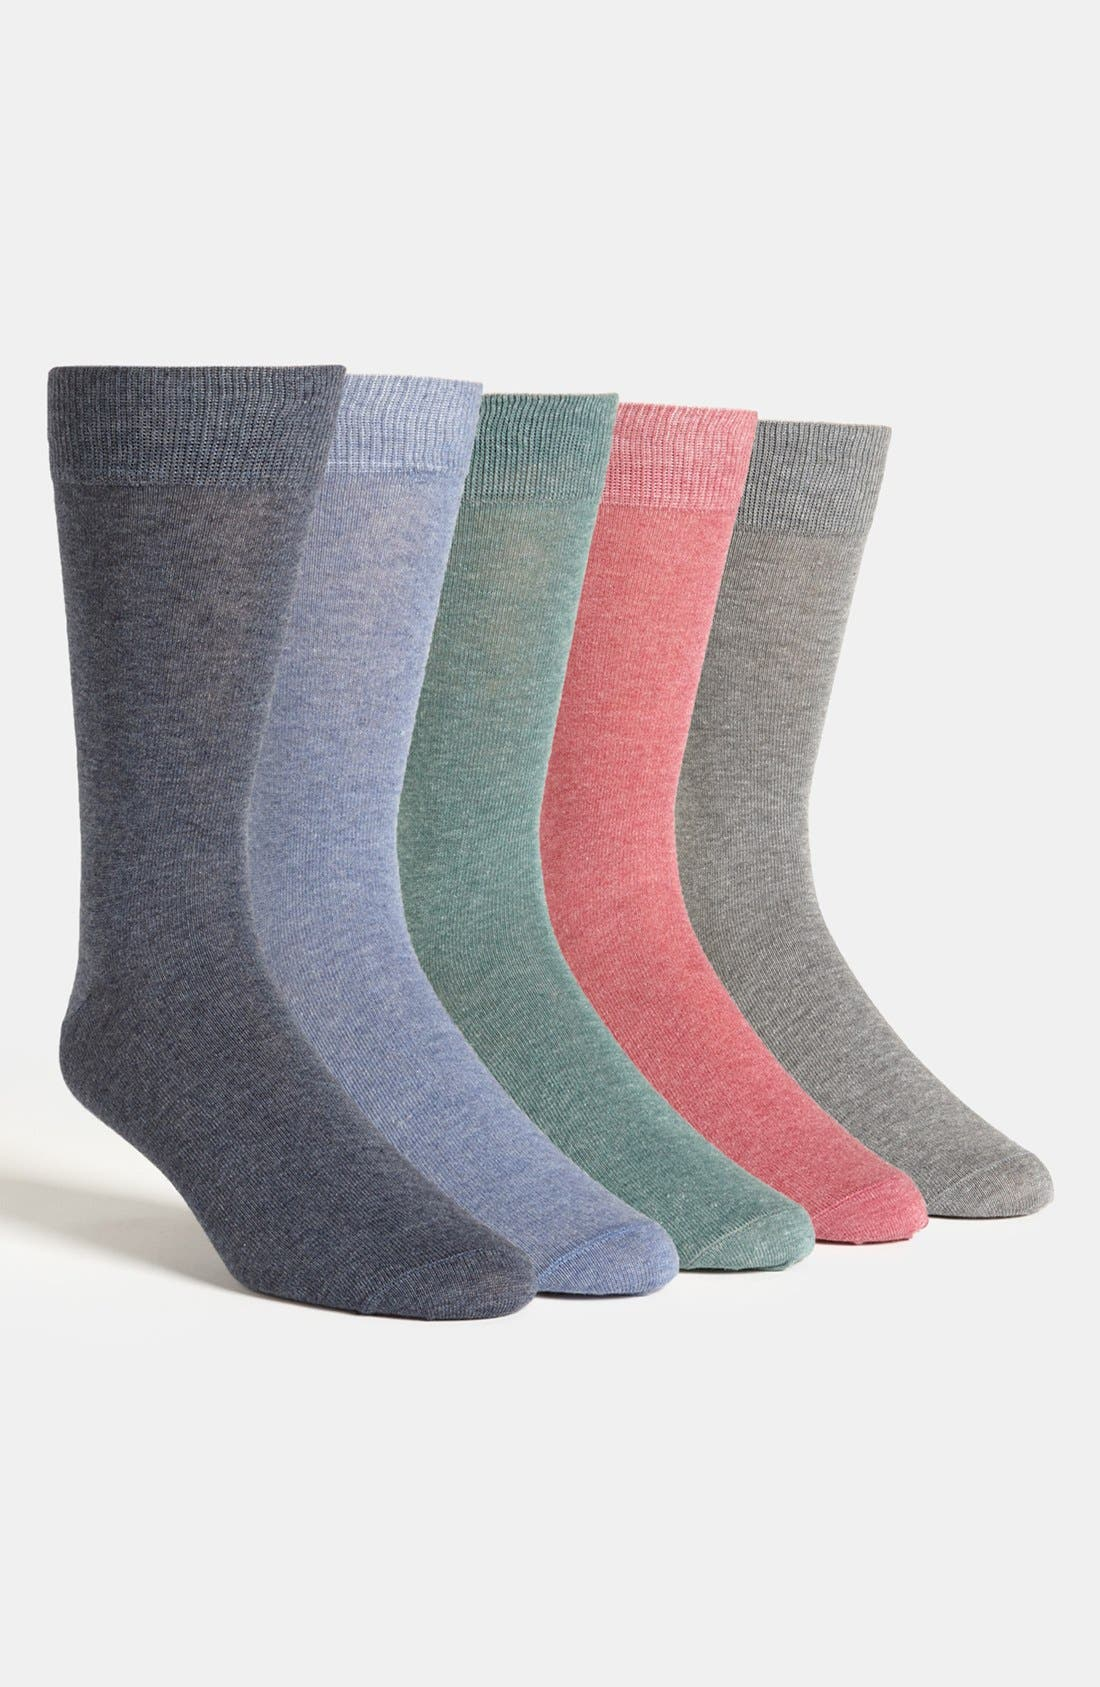 Alternate Image 1 Selected - Topman Socks (Assorted 5-Pack)